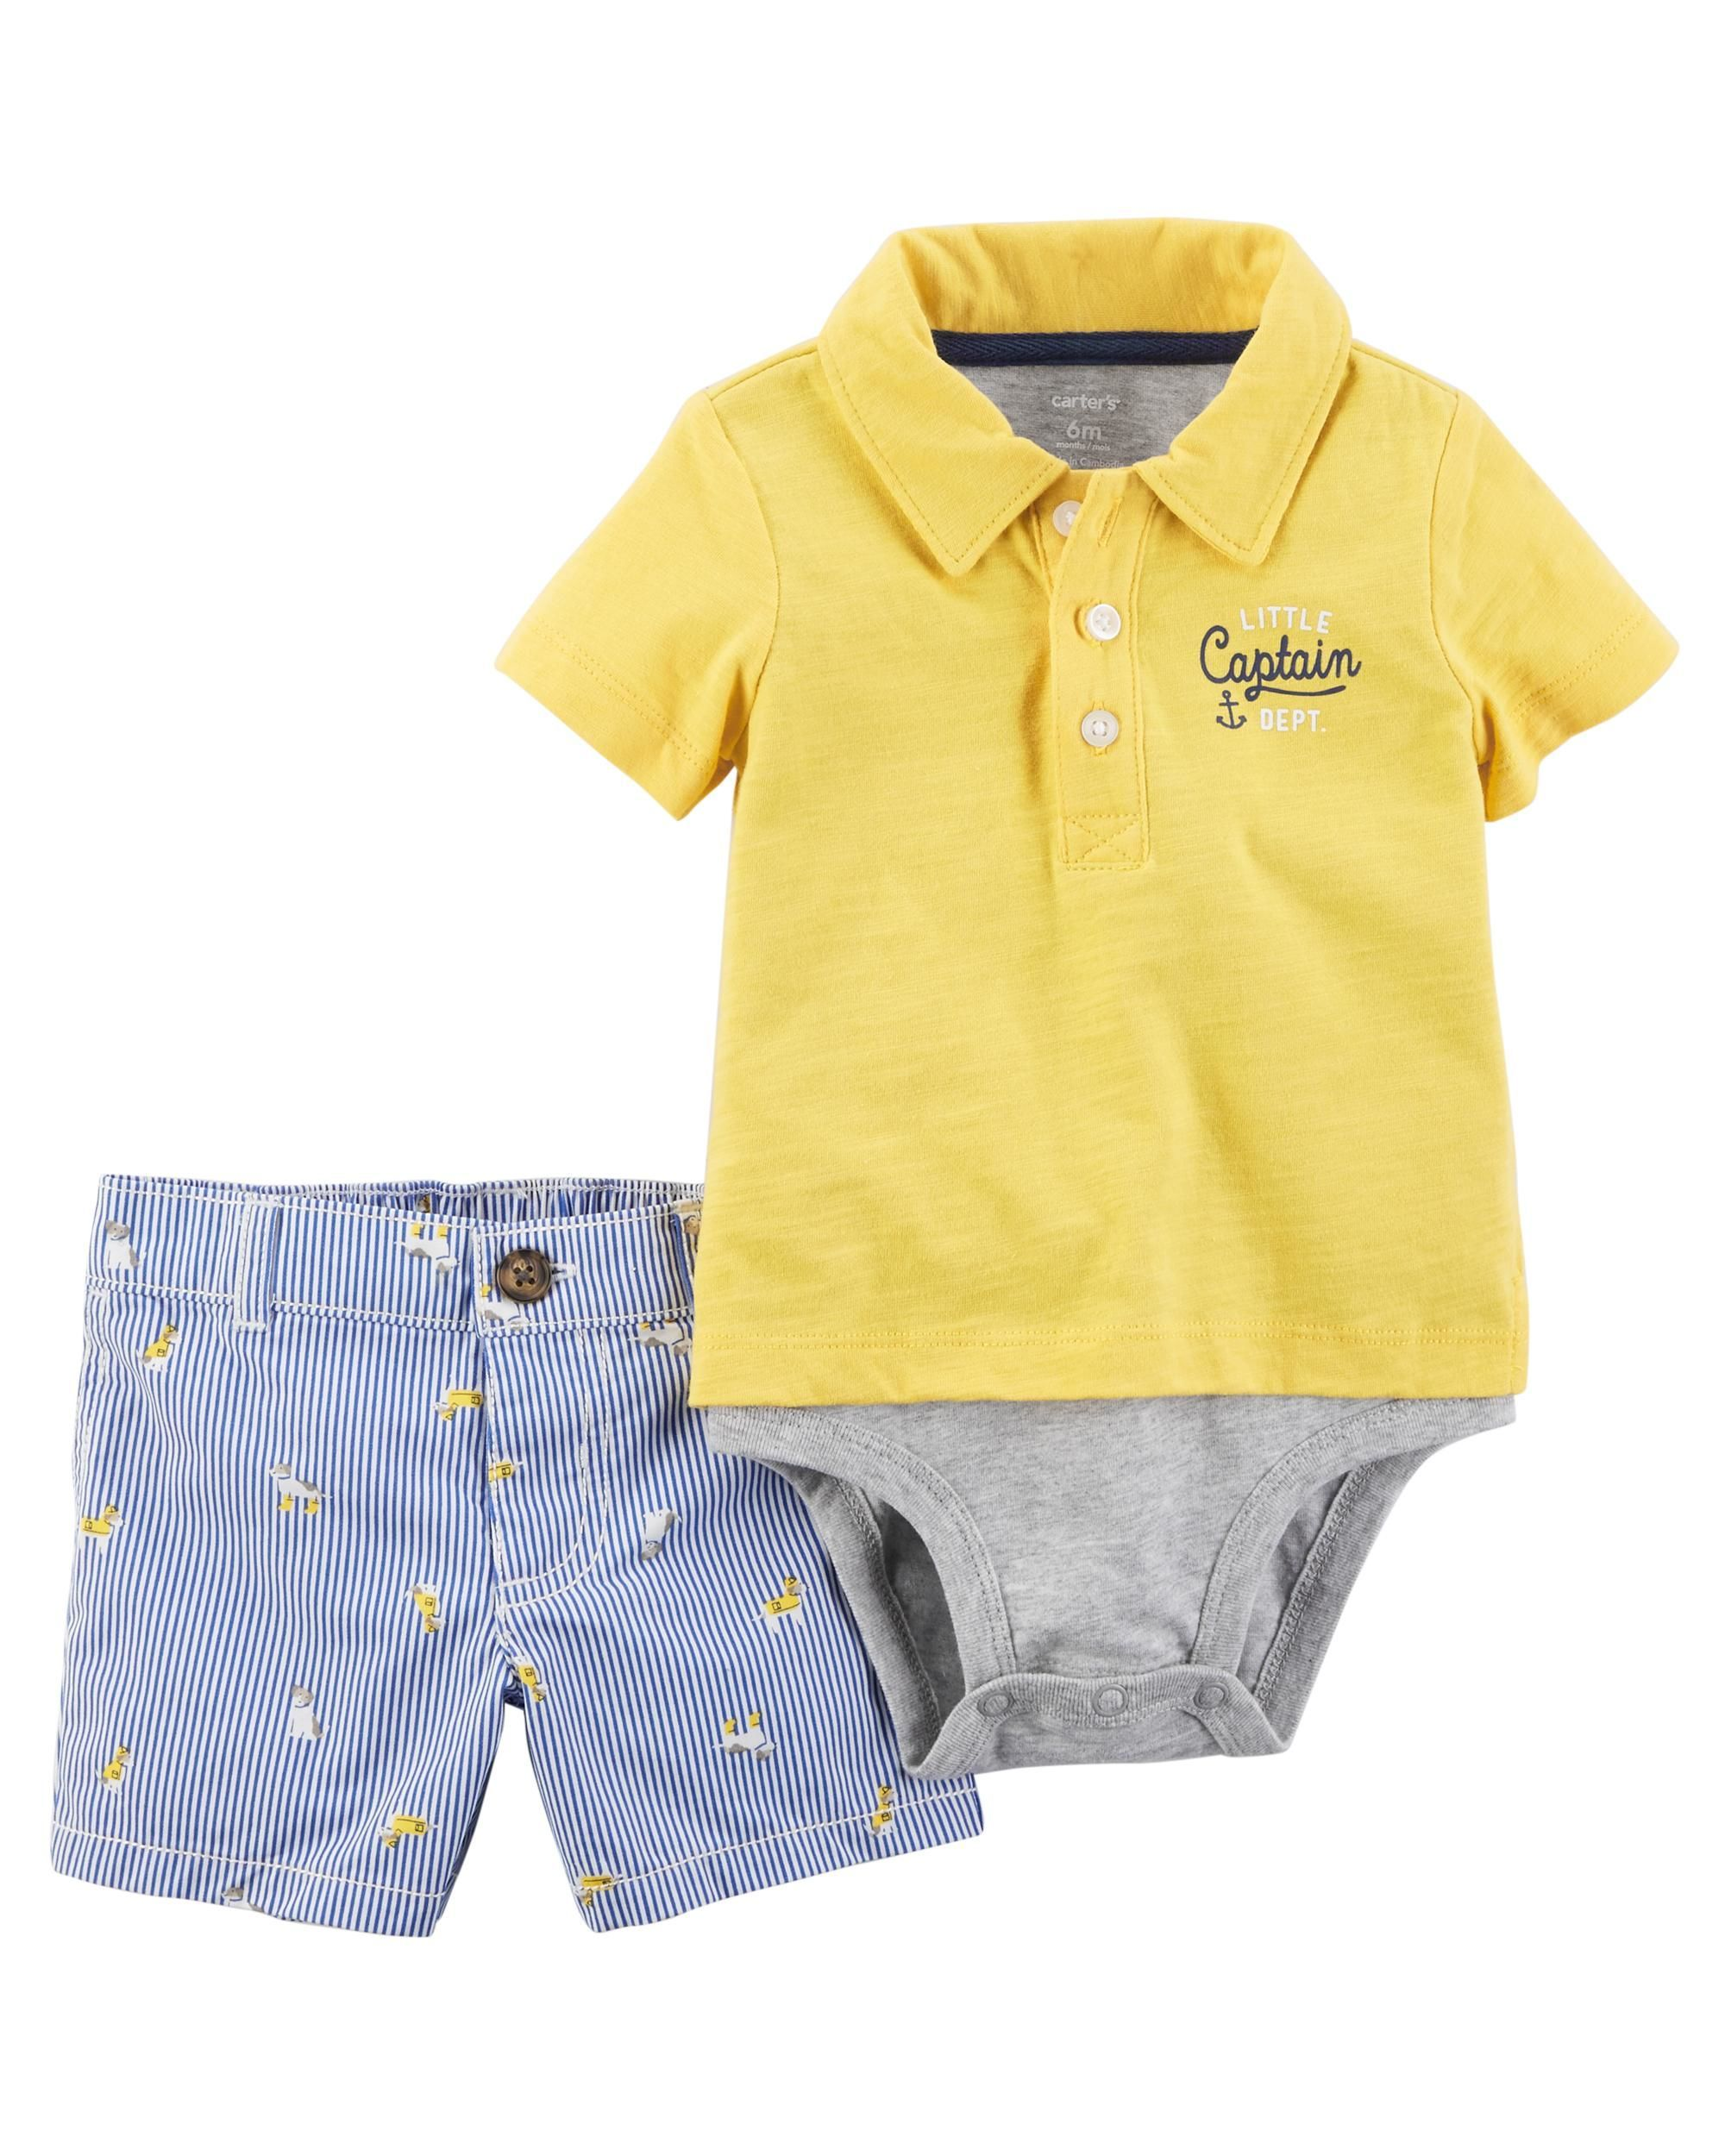 e71a1c1f4 Check out our site we have a cute and affordable outfit that your kids will  surely